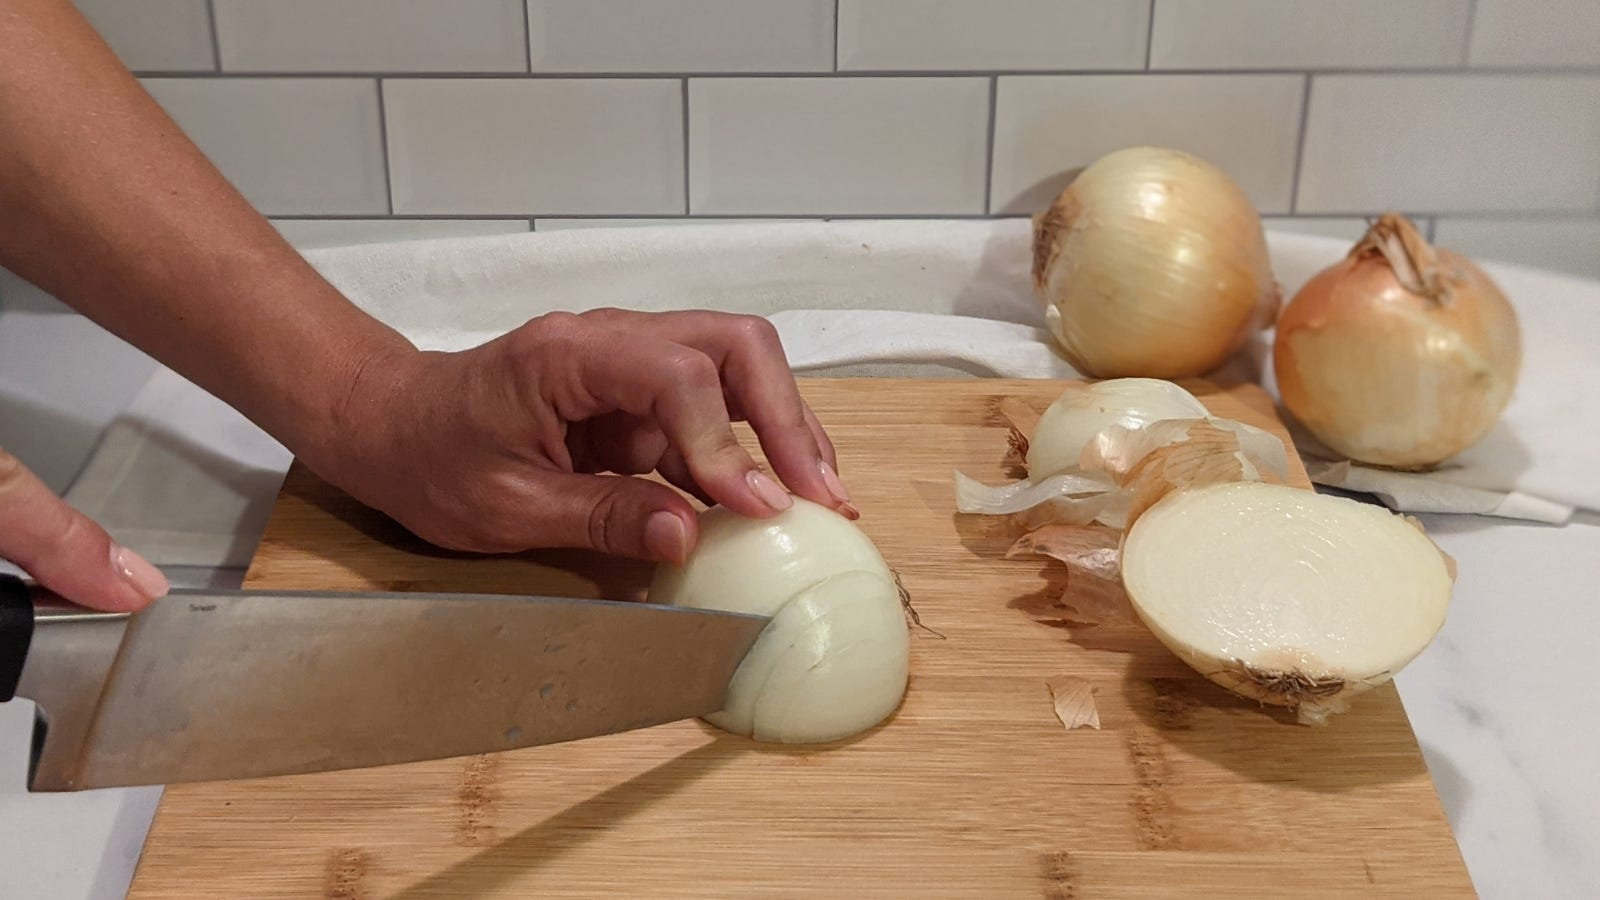 Slicing an onion vertically multiple times, with onions and onion peels on the side.